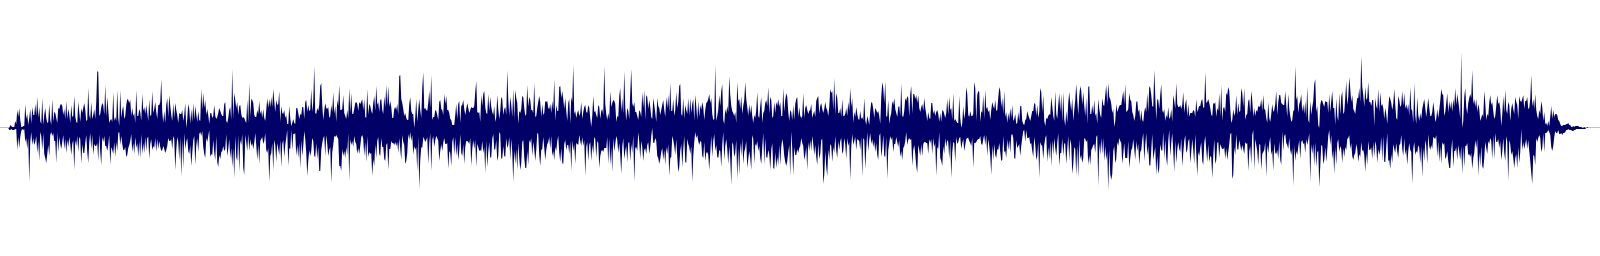 waveform of track #128776